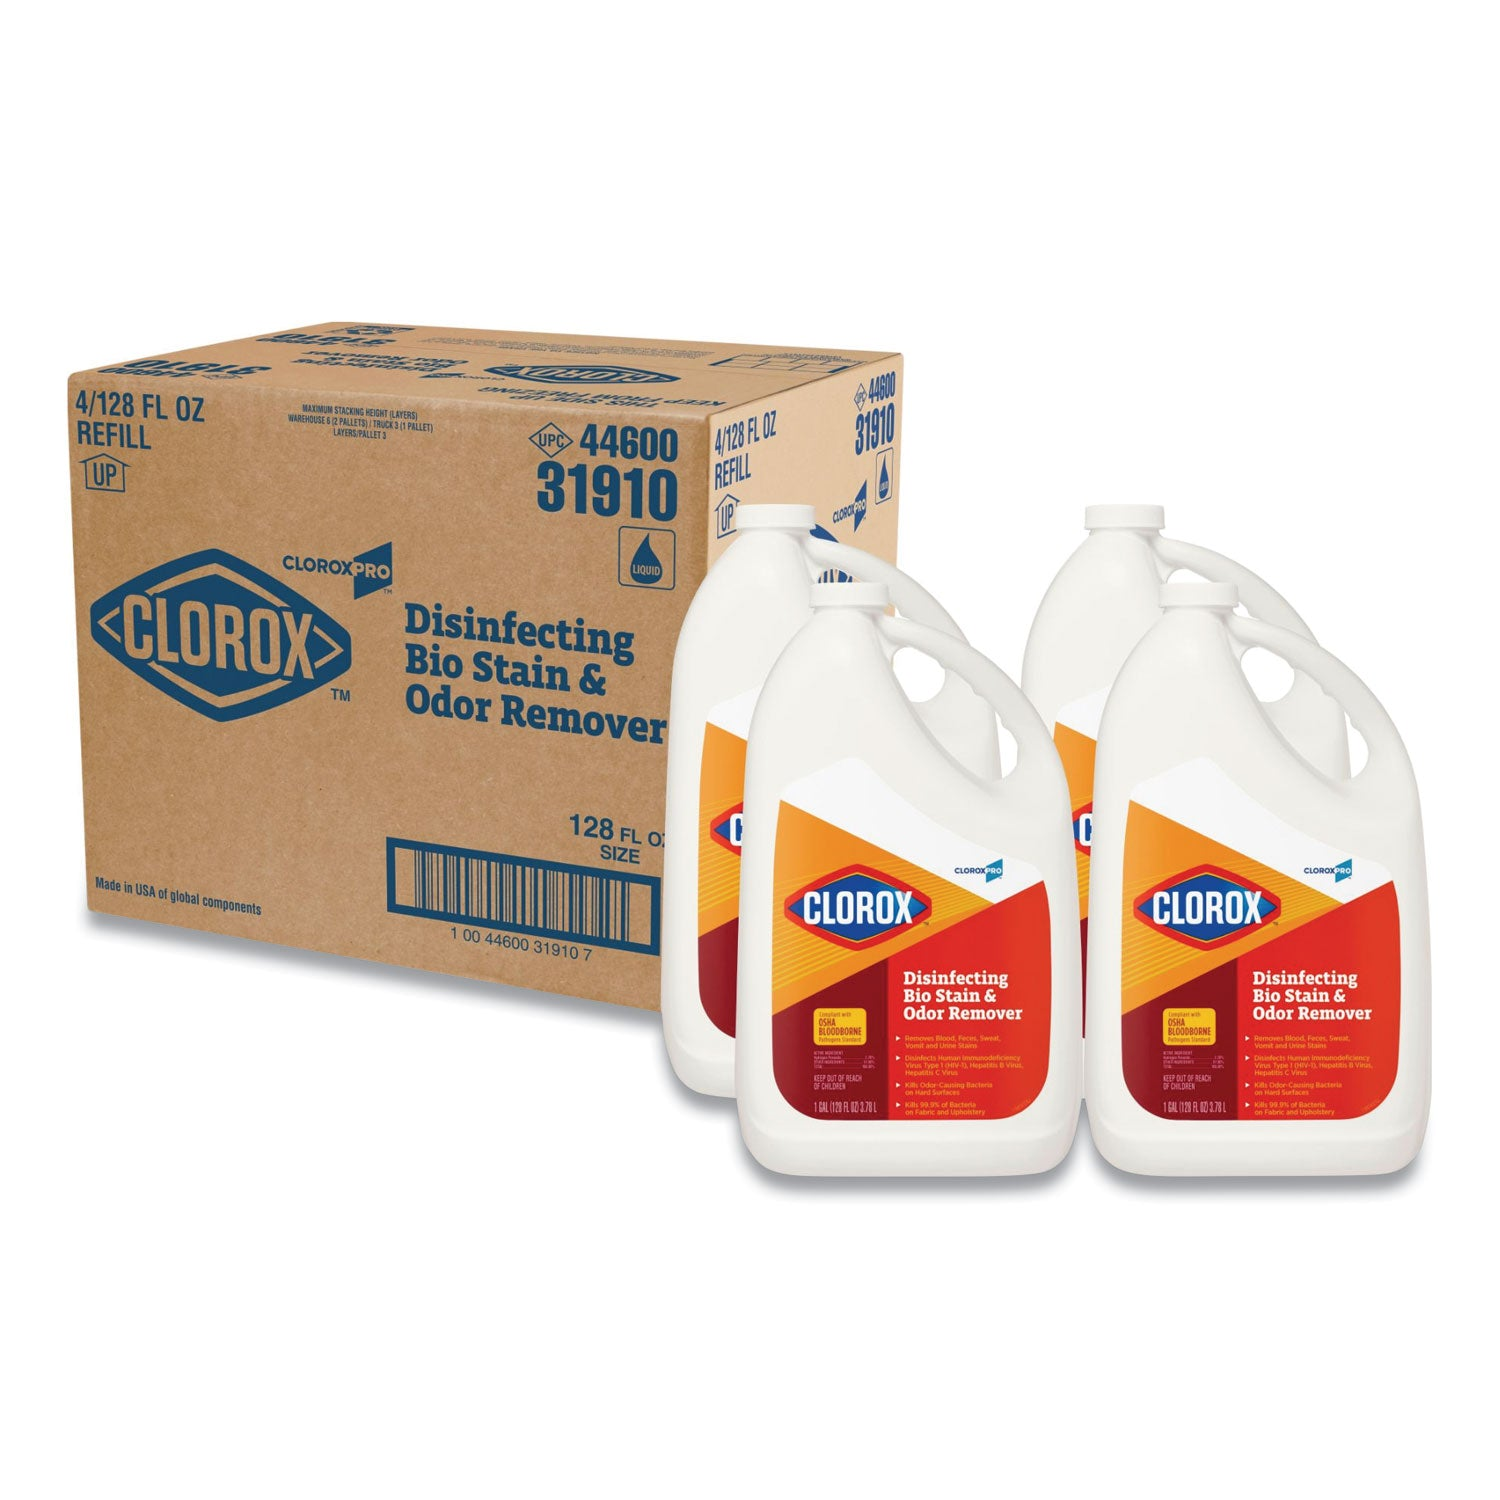 Clorox Disinfecting Bio Stain And Odor Remover, Fragranced, 128 Oz Refill Bottle, 4/Ct - CLO31910